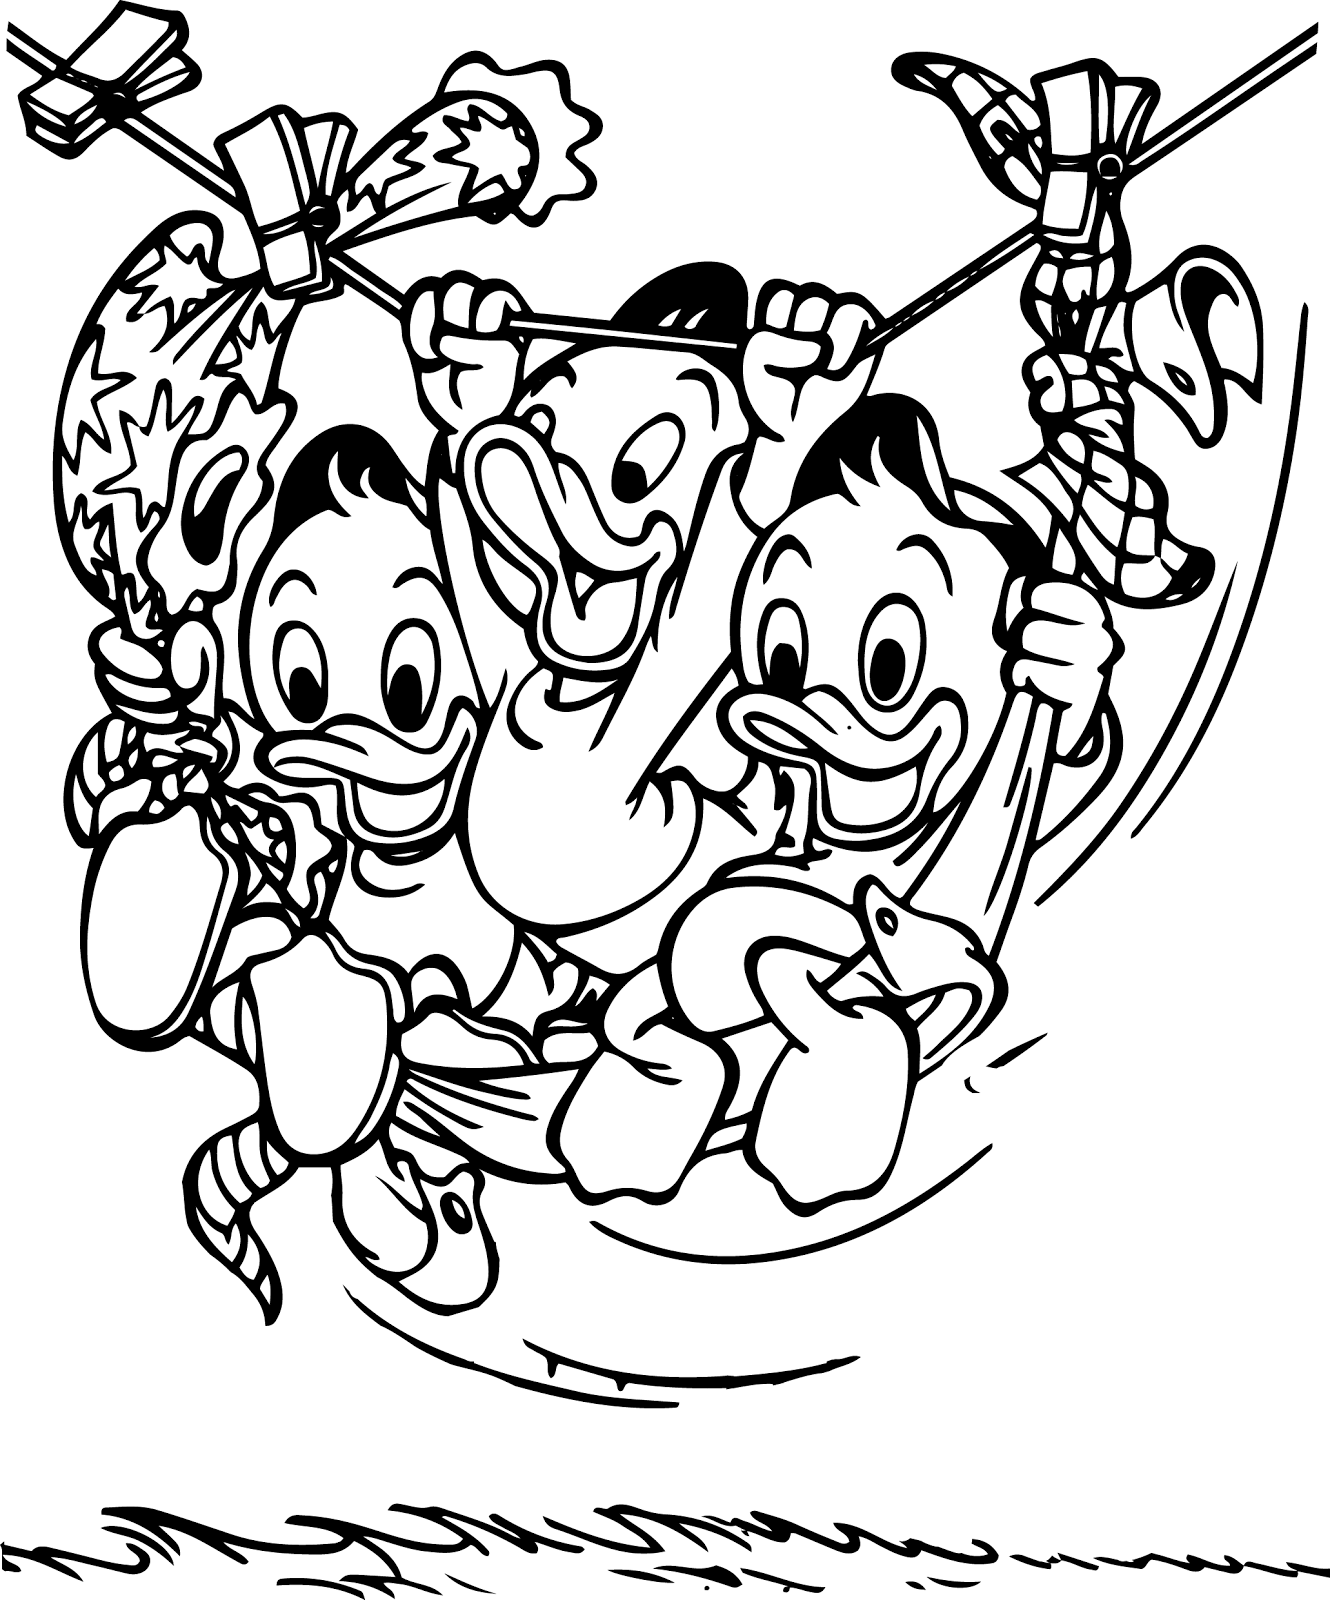 free coloring pages of disney characters baby dog disney character coloring page in 2020 disney disney pages characters coloring free of